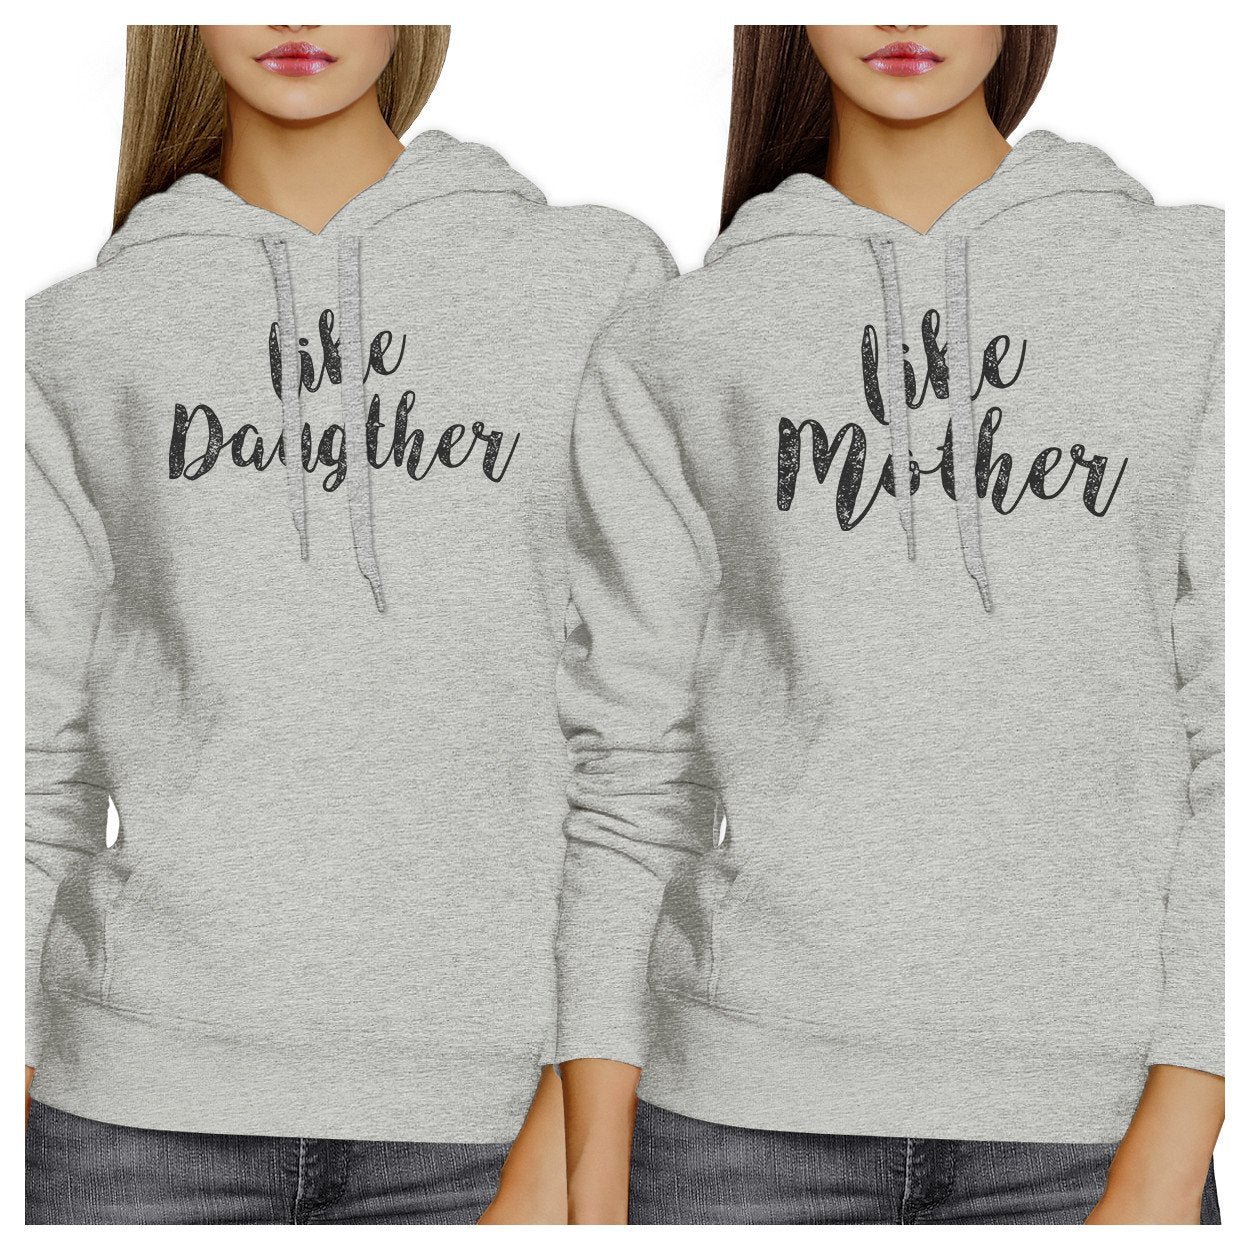 Like Daughter Like Mother Grey Matching Hoodies Unique Moms Gifts